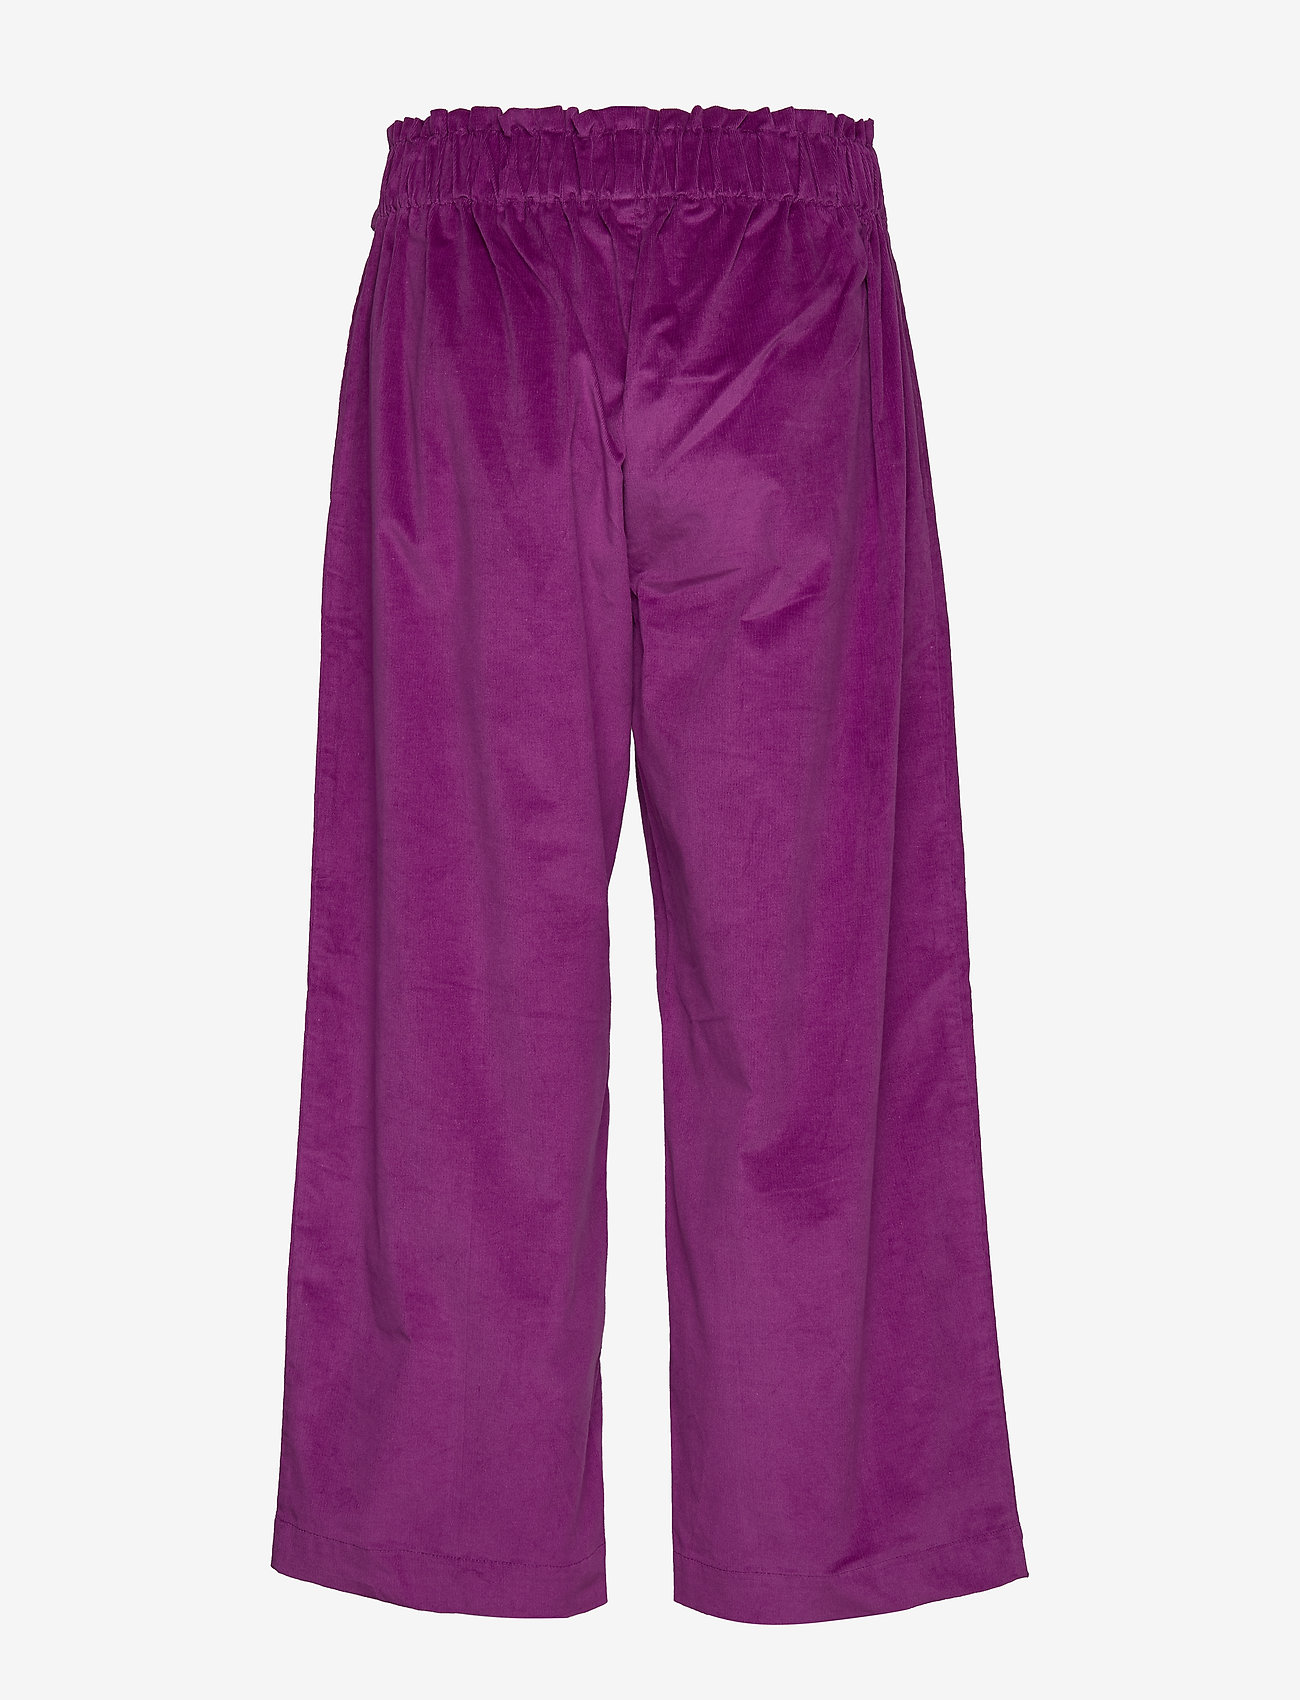 Aila Pants (Purple) (55 €) - Lollys Laundry z8DTv